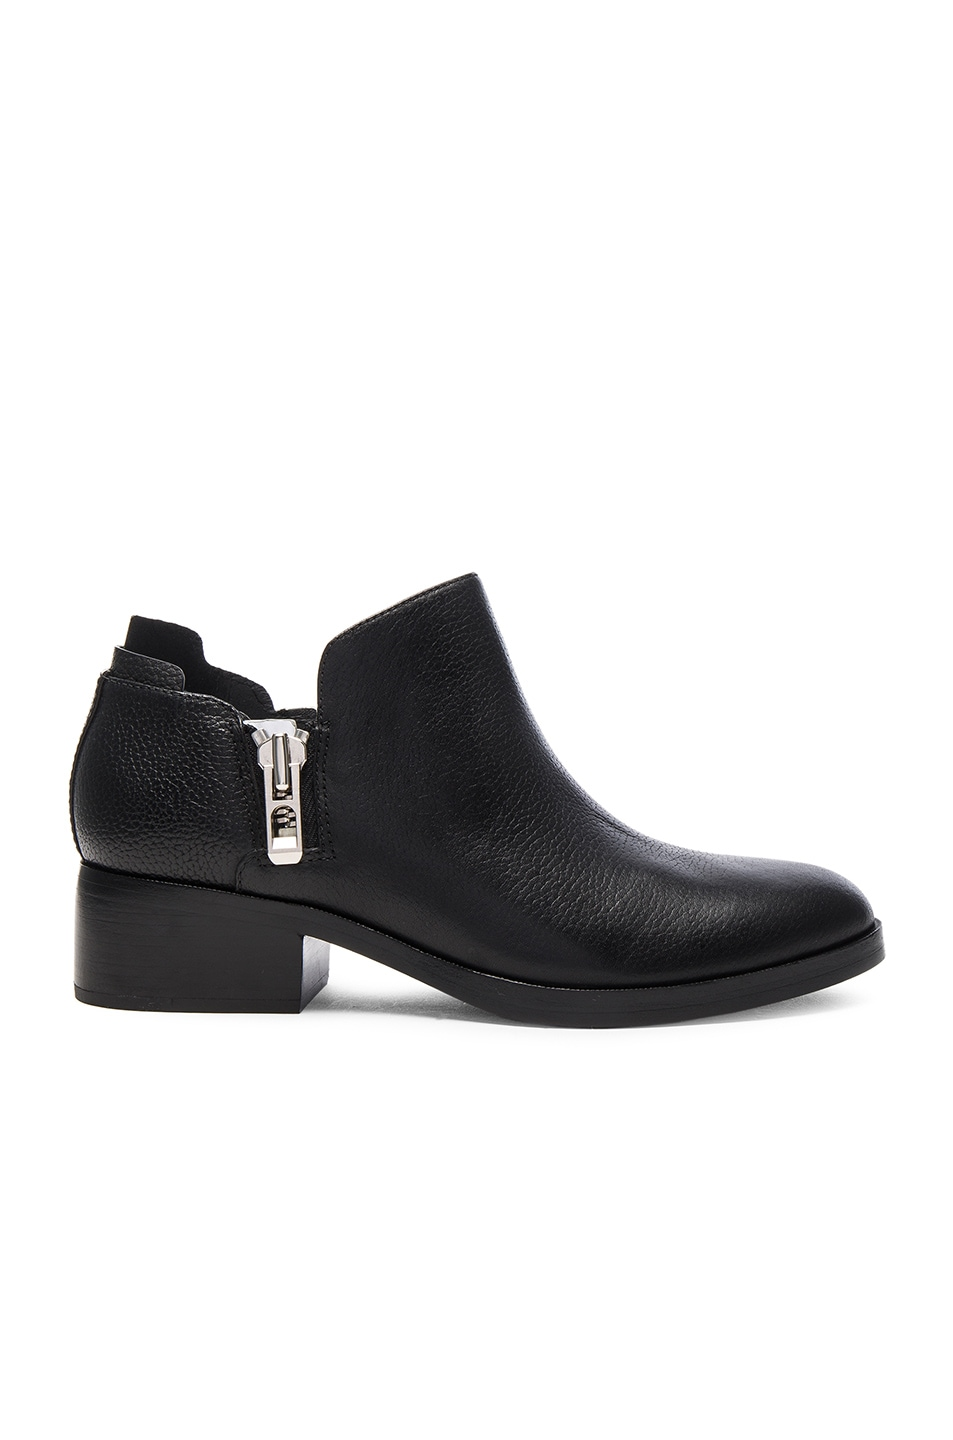 Image 1 of 3.1 phillip lim Leather Alexa Ankle Booties in Black